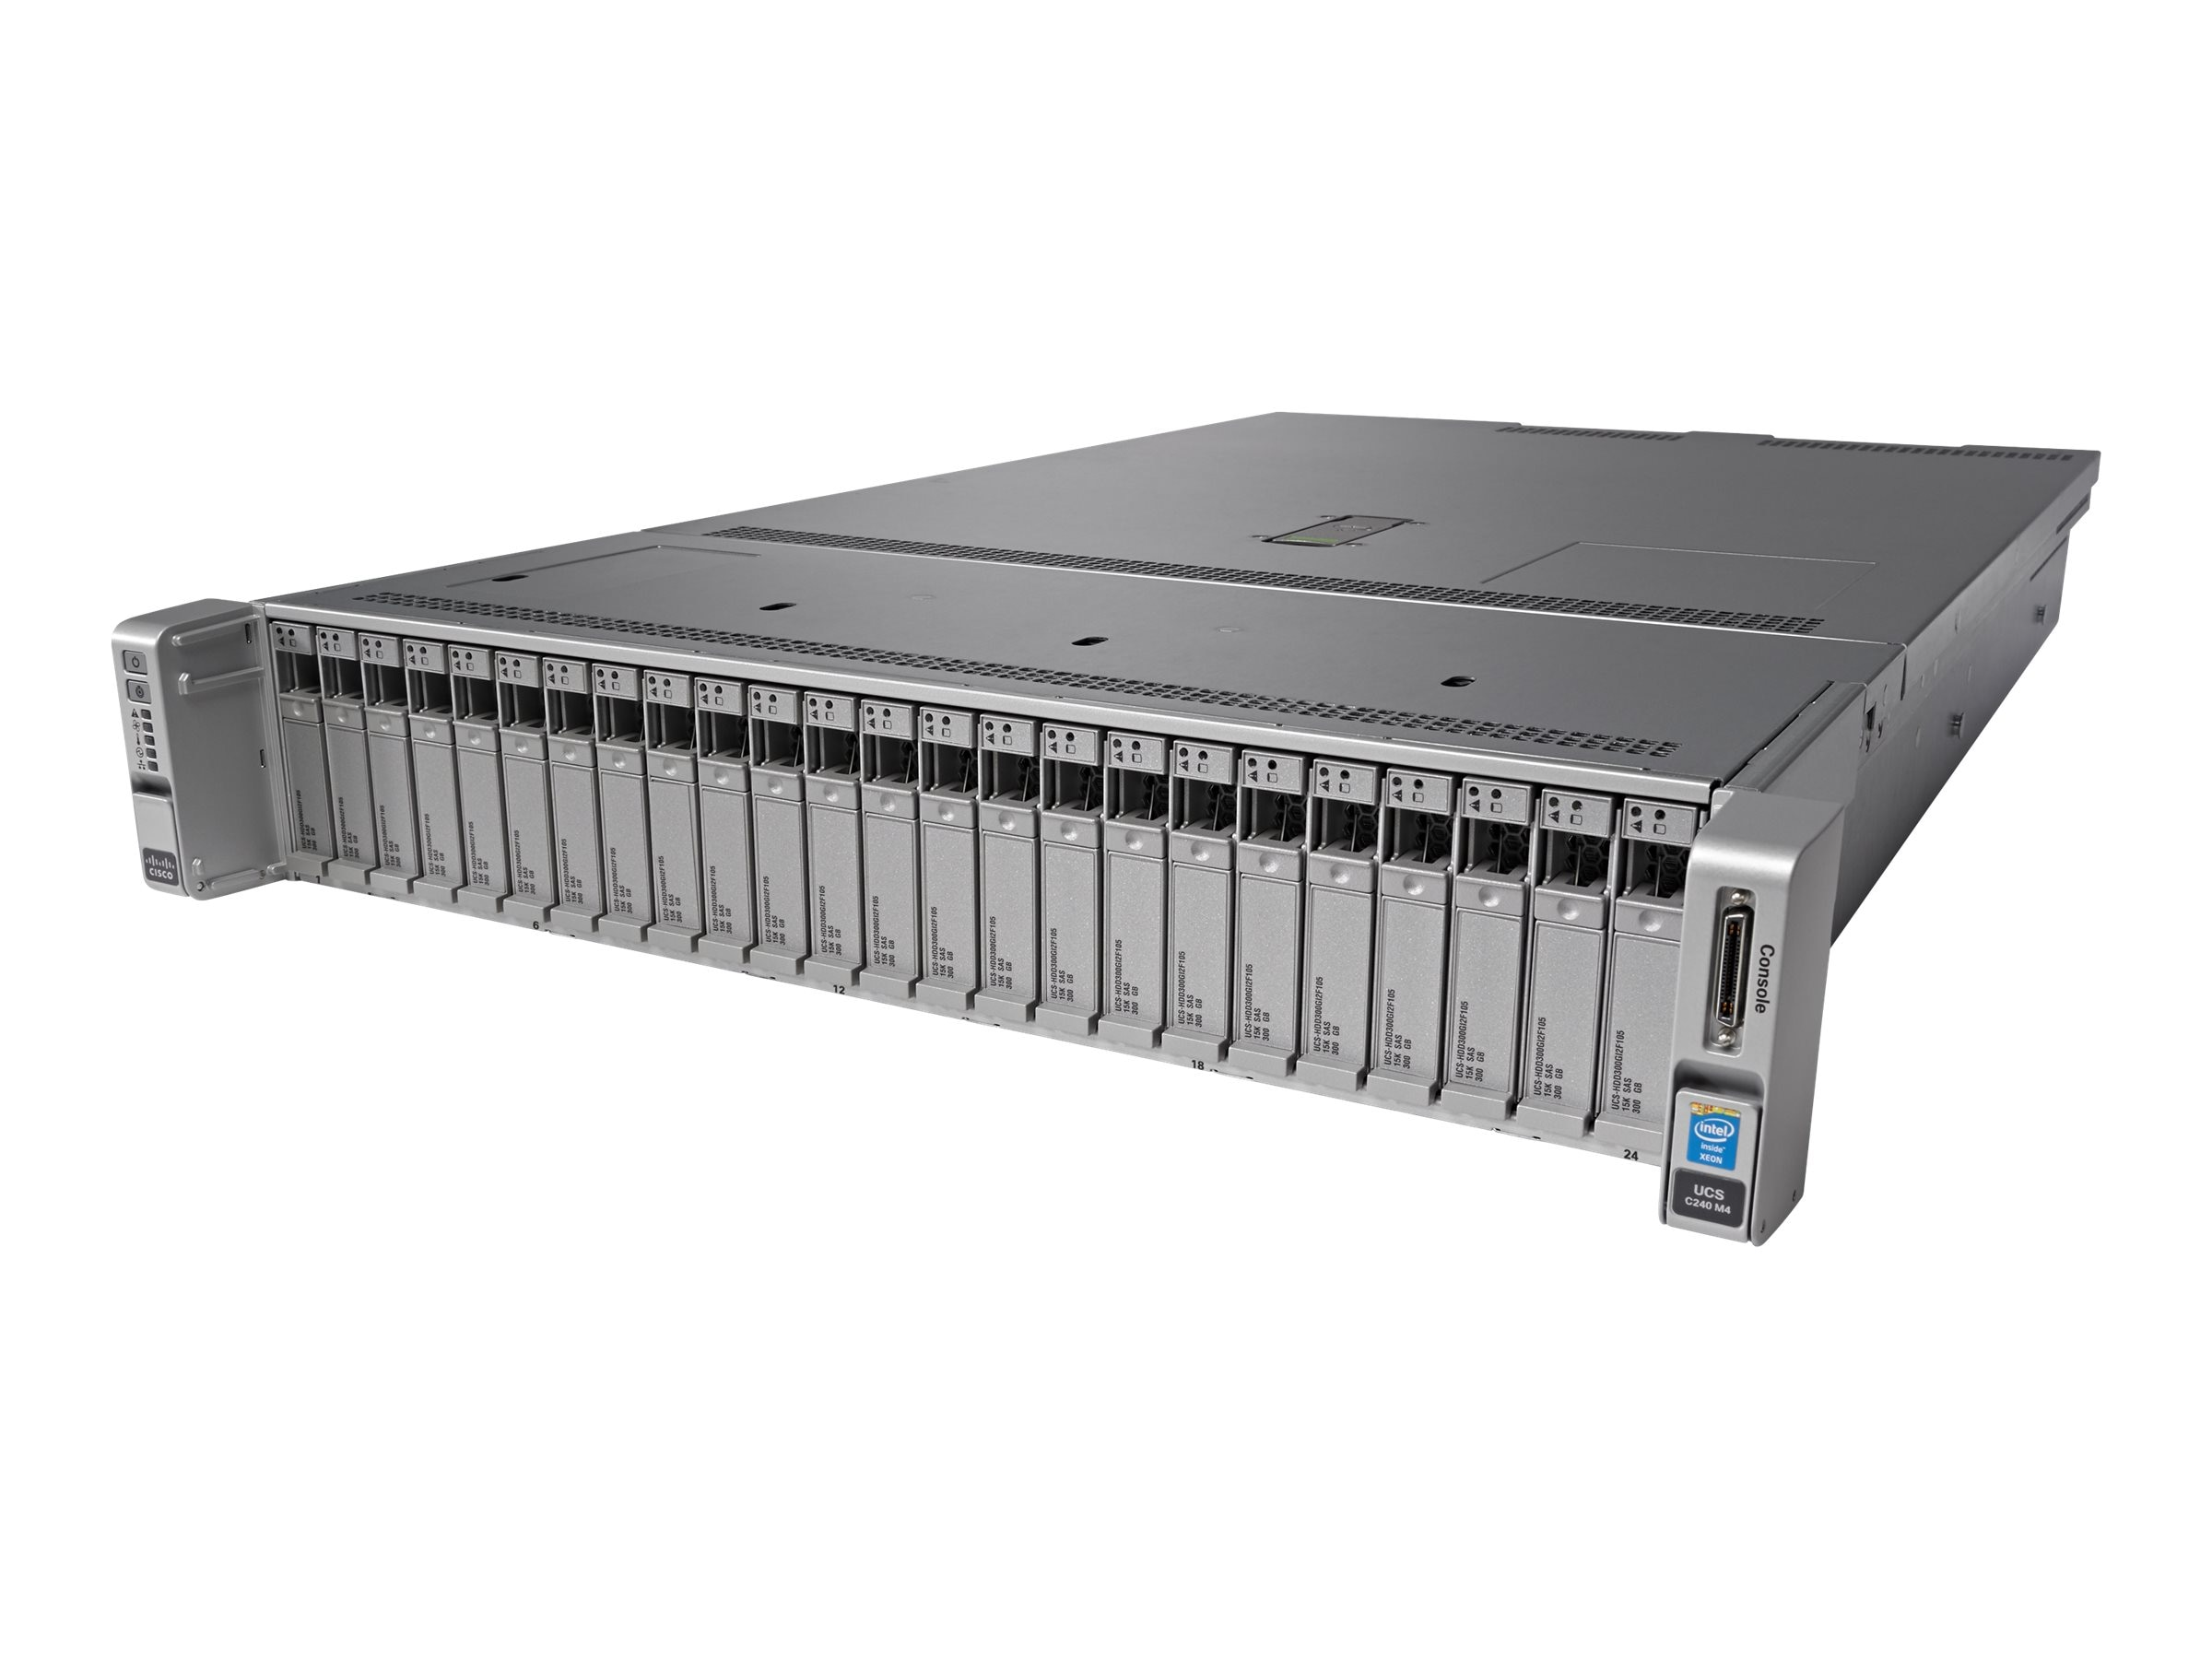 Cisco UCS C240 M4S Xeon E5-2650 v4 32GB MRAID 32GB SD 1x1200W Rails